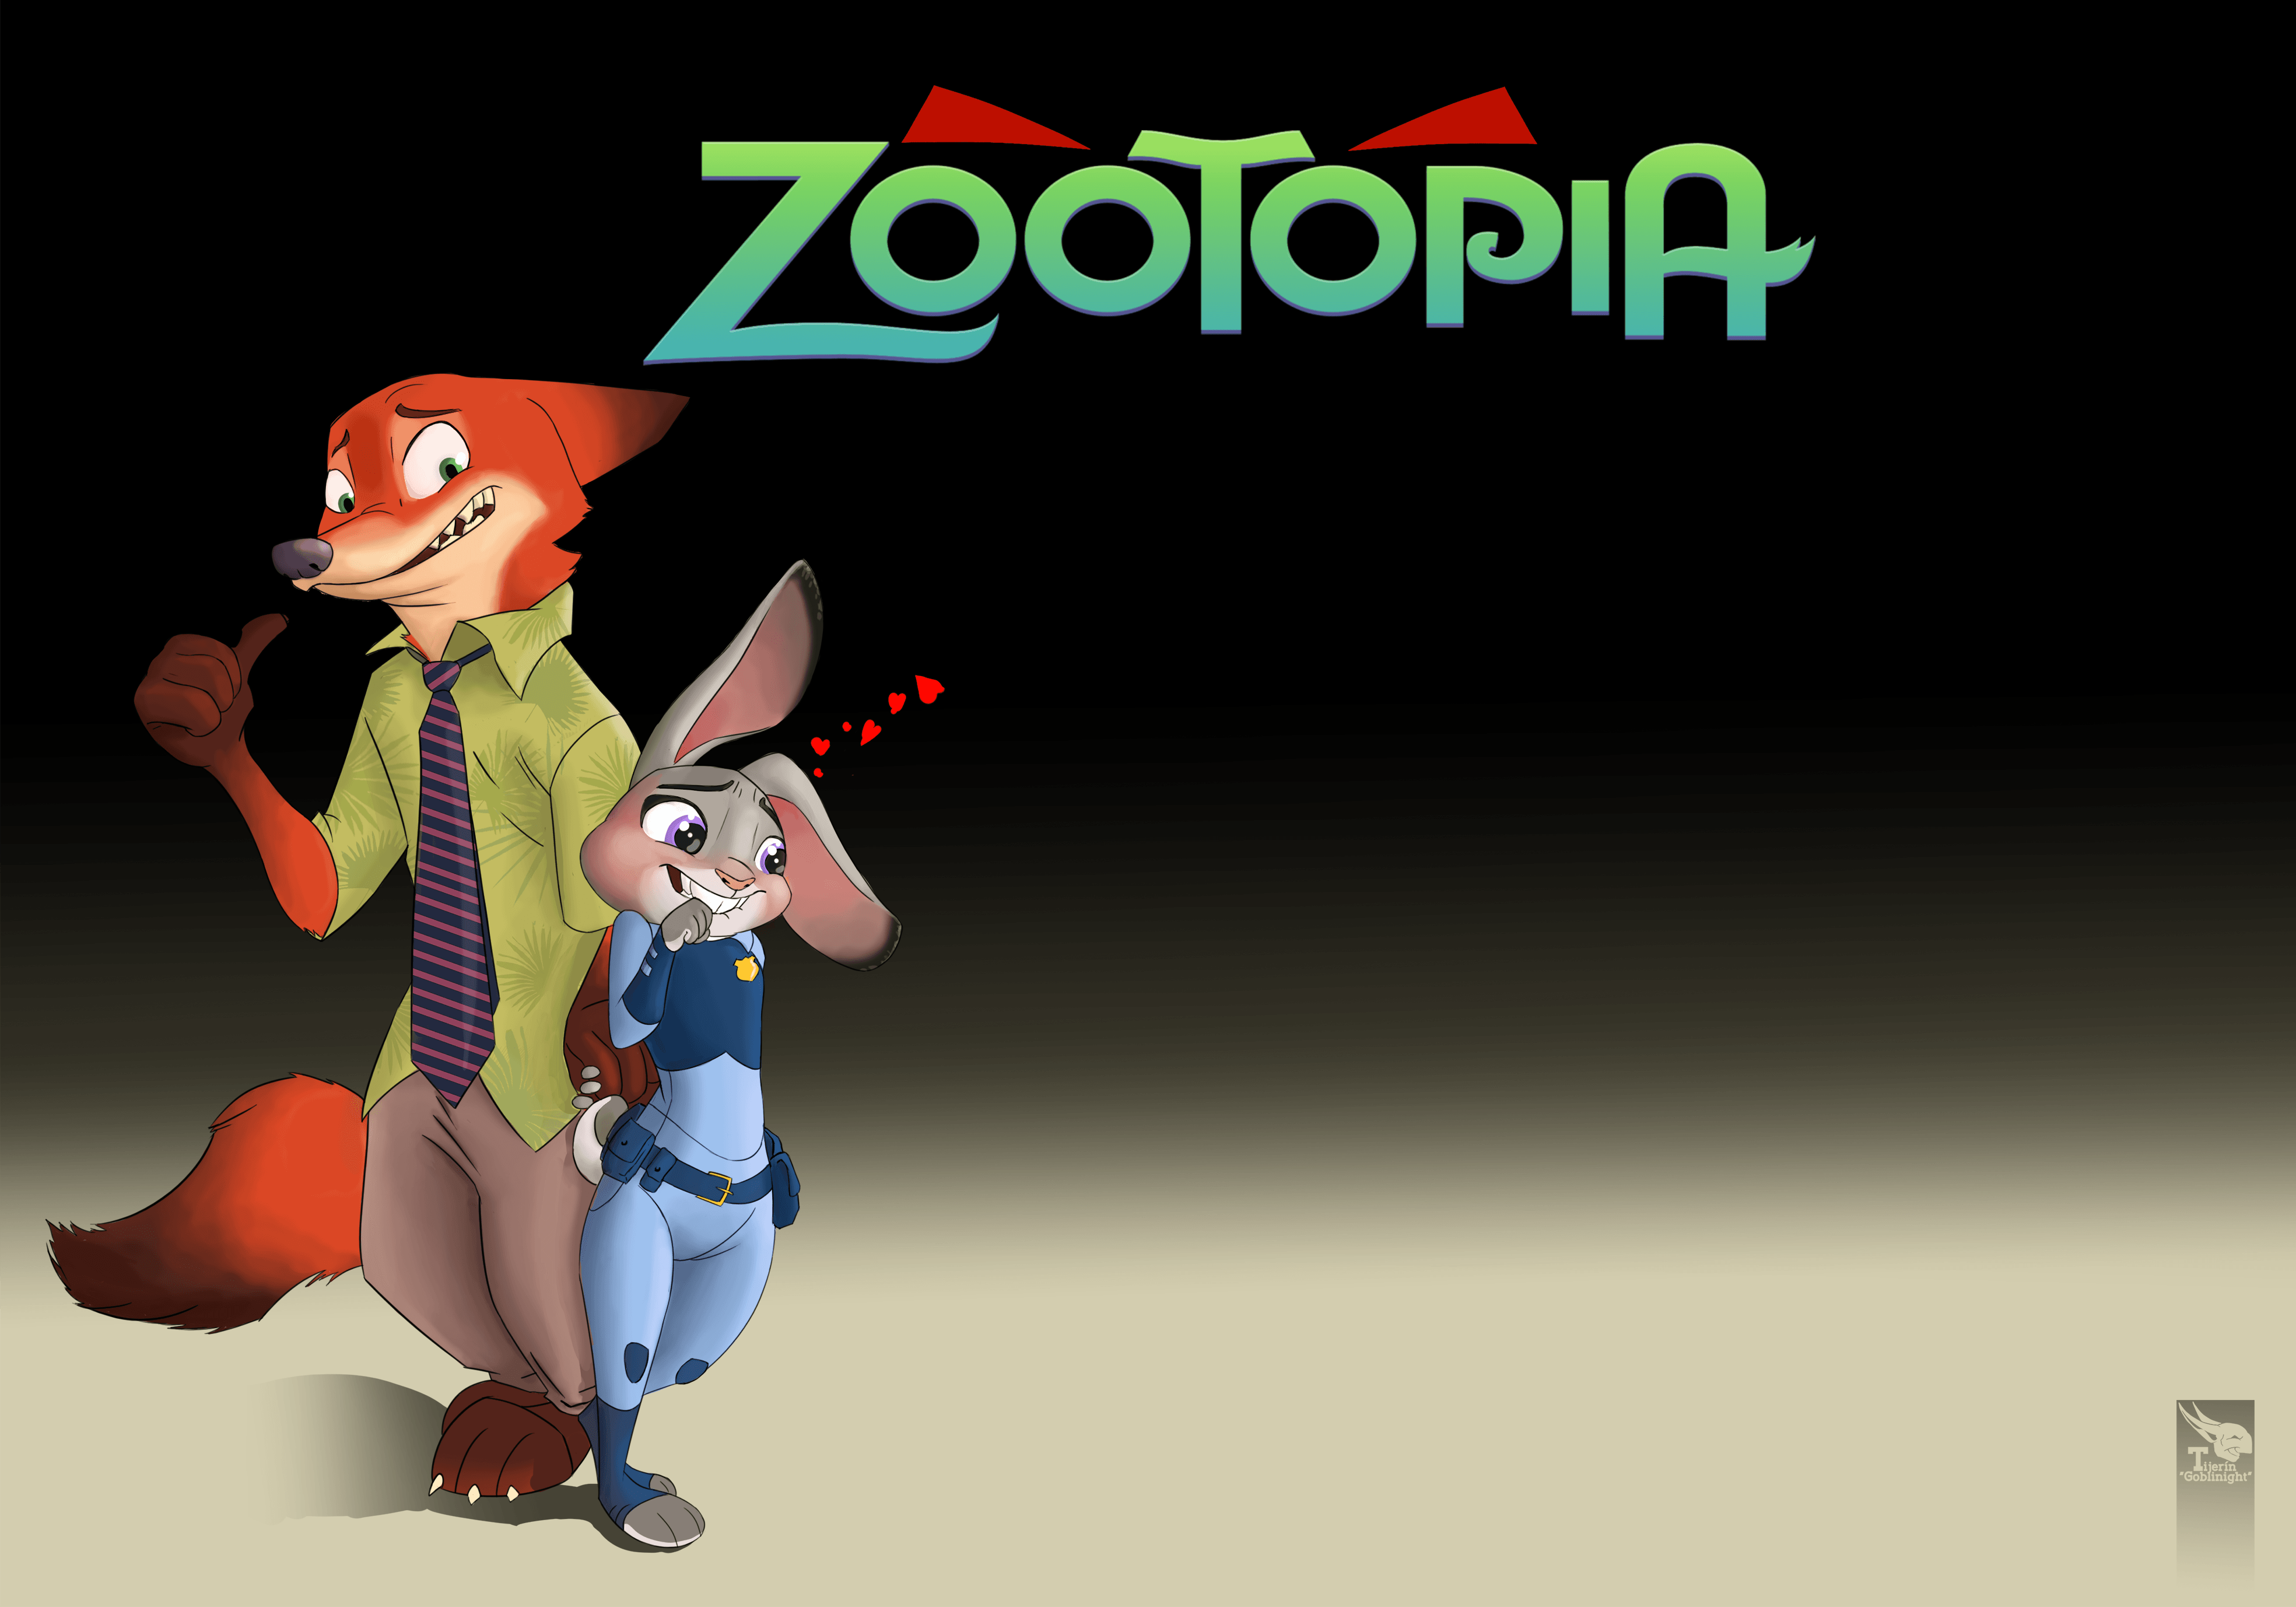 Zootopia Hd Wallpapers Wallpaper Cave